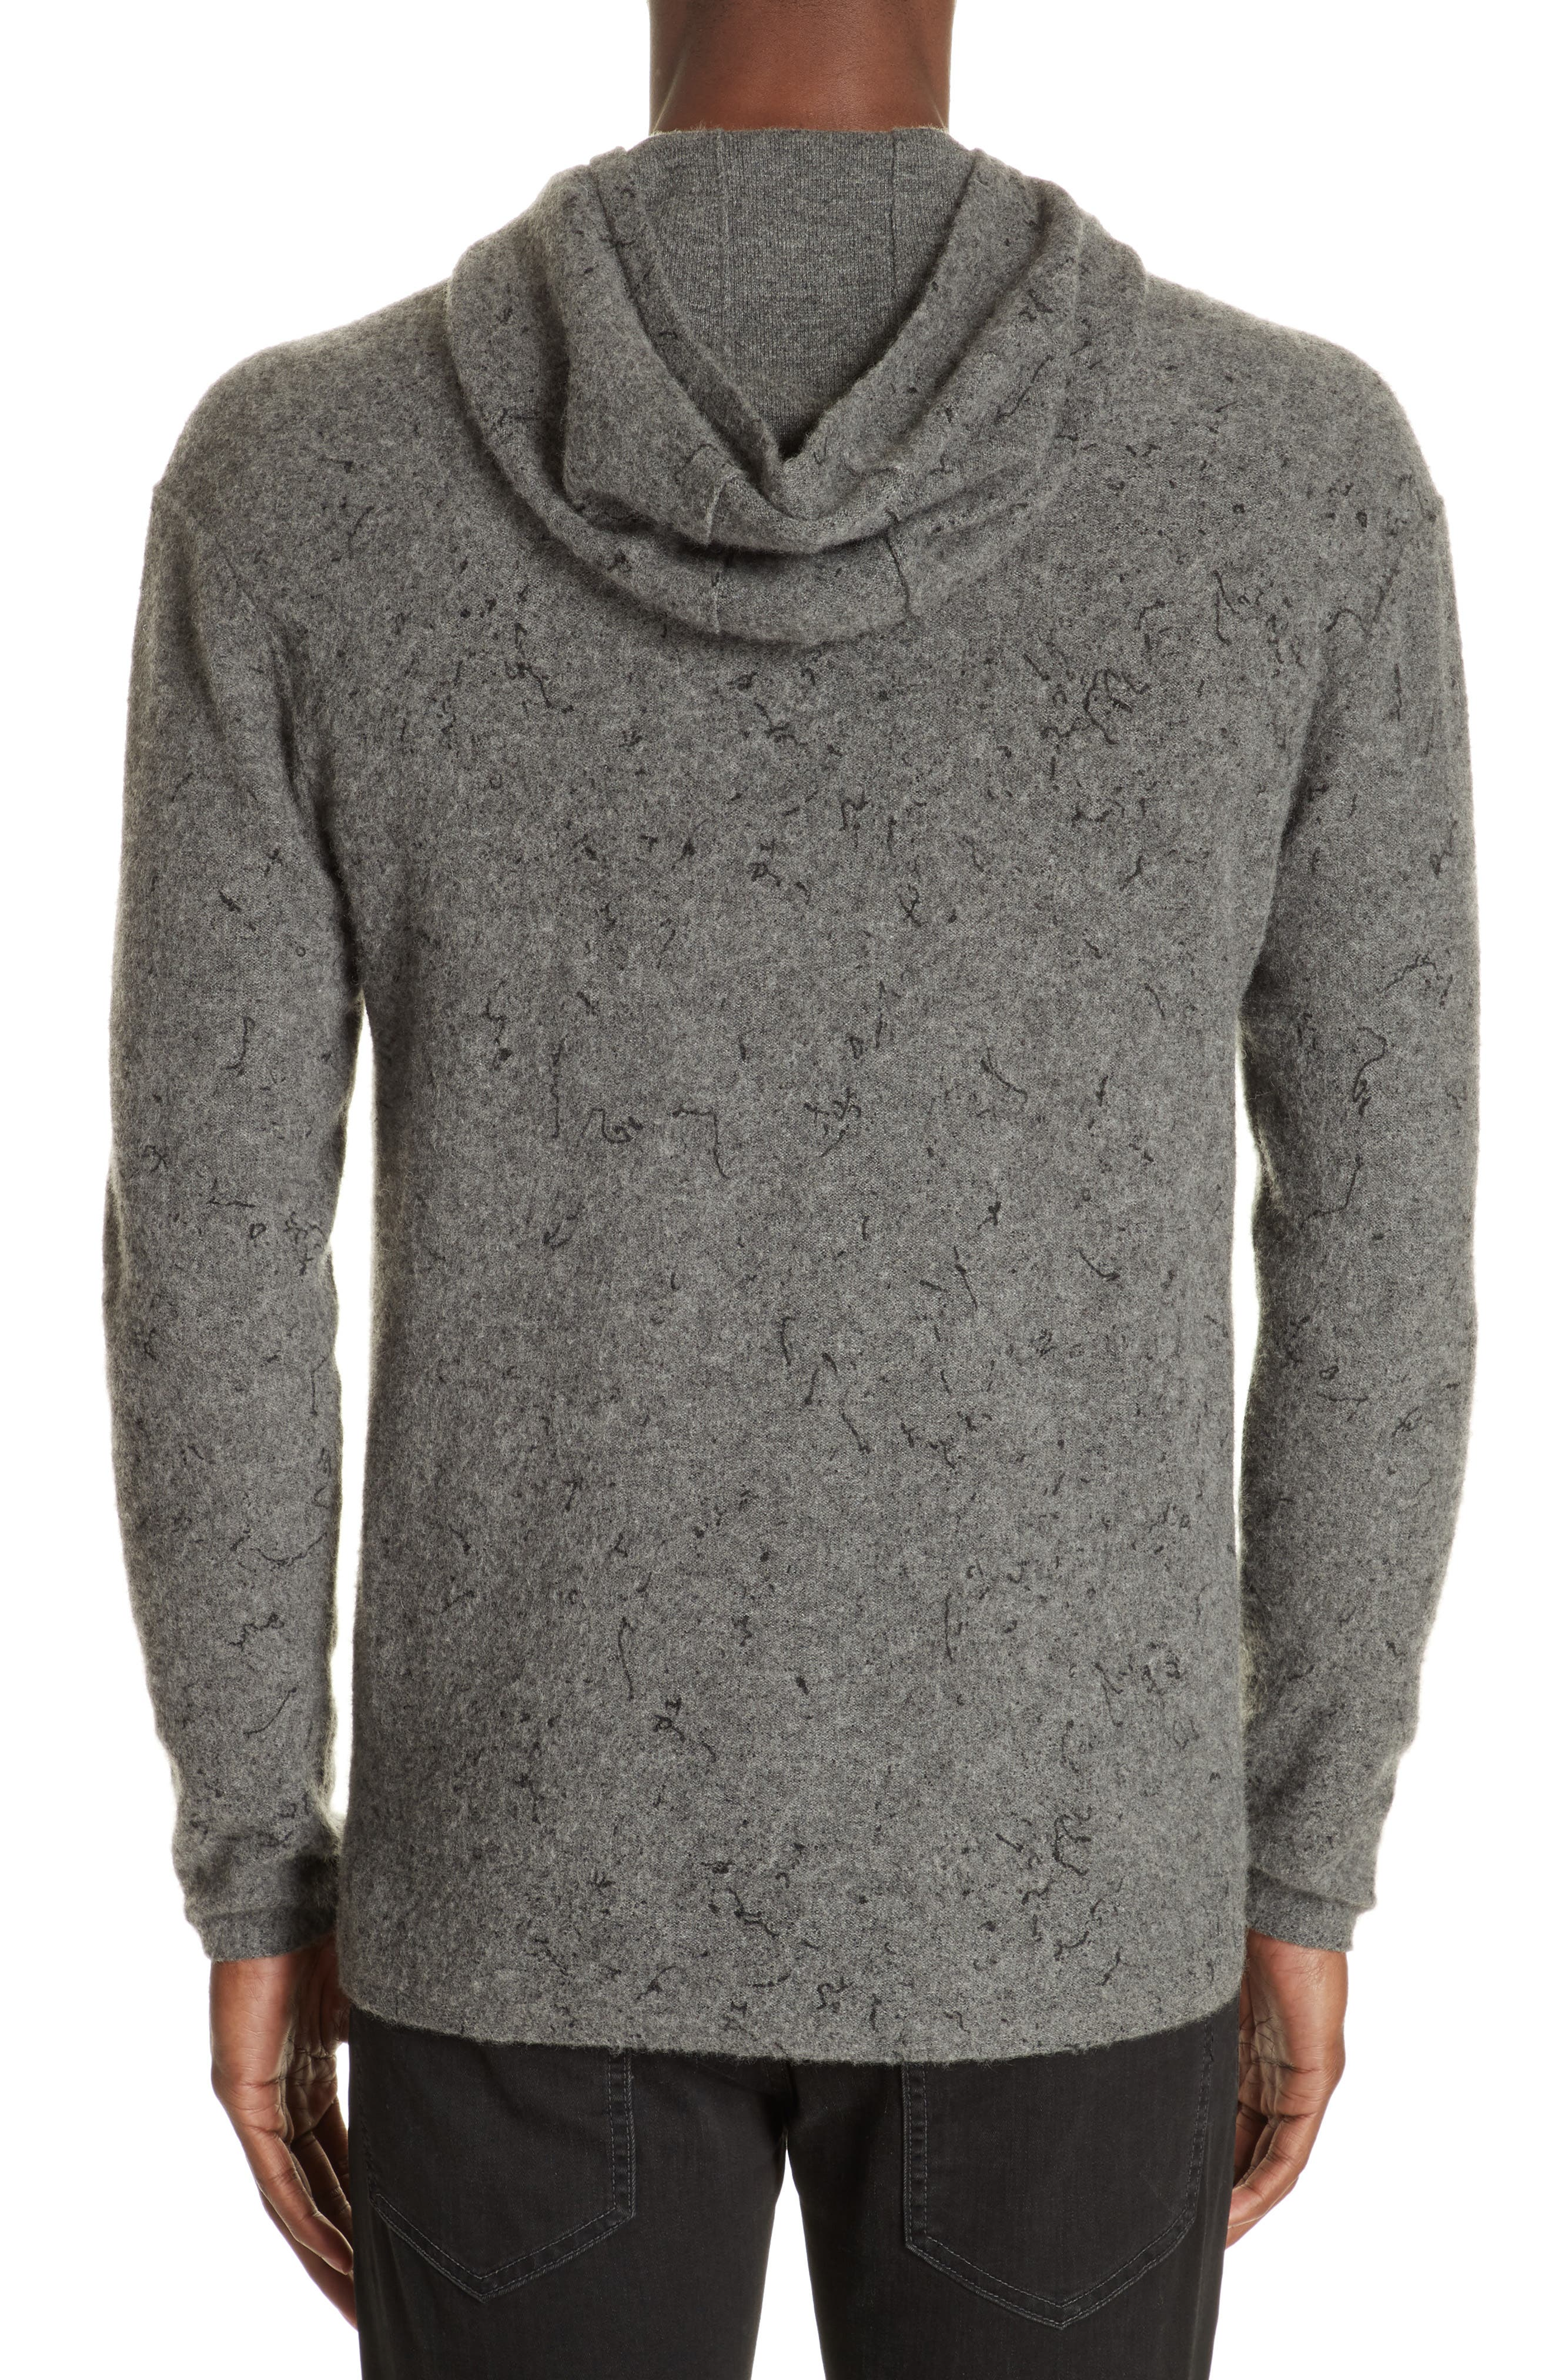 Wool Cashmere Hooded Sweater,                             Alternate thumbnail 2, color,                             SMOKE HEATHER